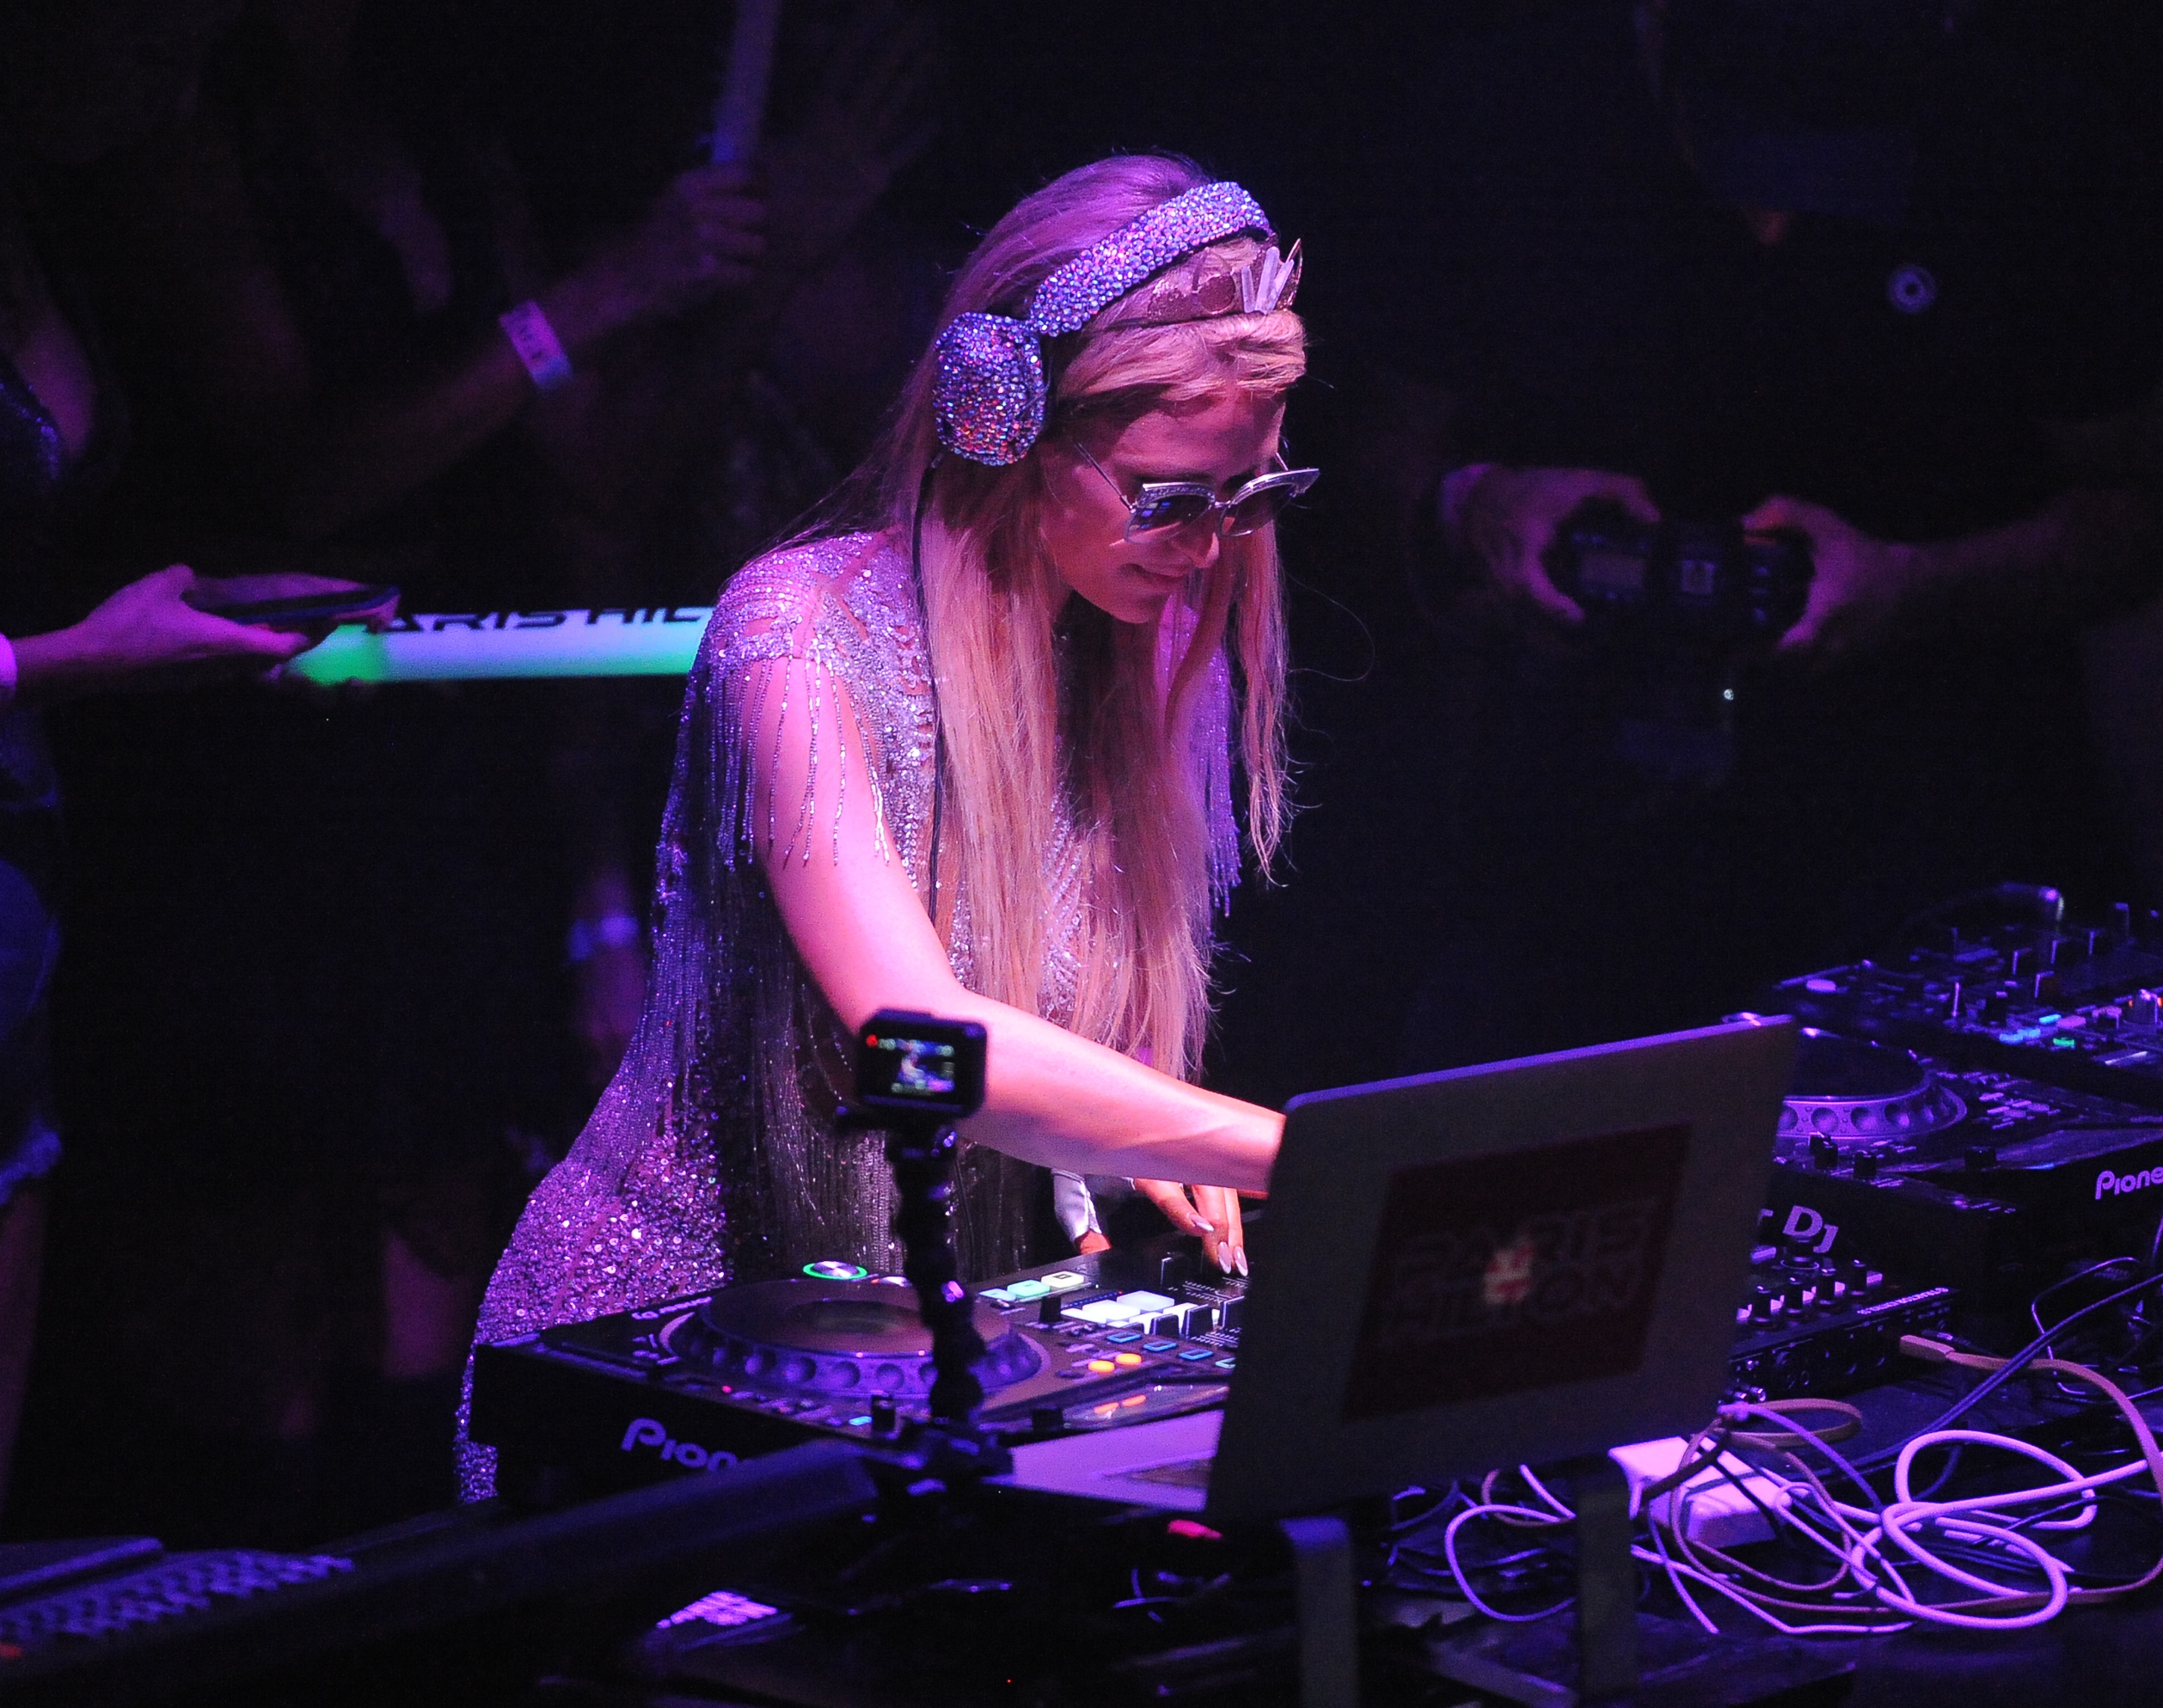 Paris Hilton performing at Amnesia Night Club on July 24, 2017 in Ibiza, Spain.